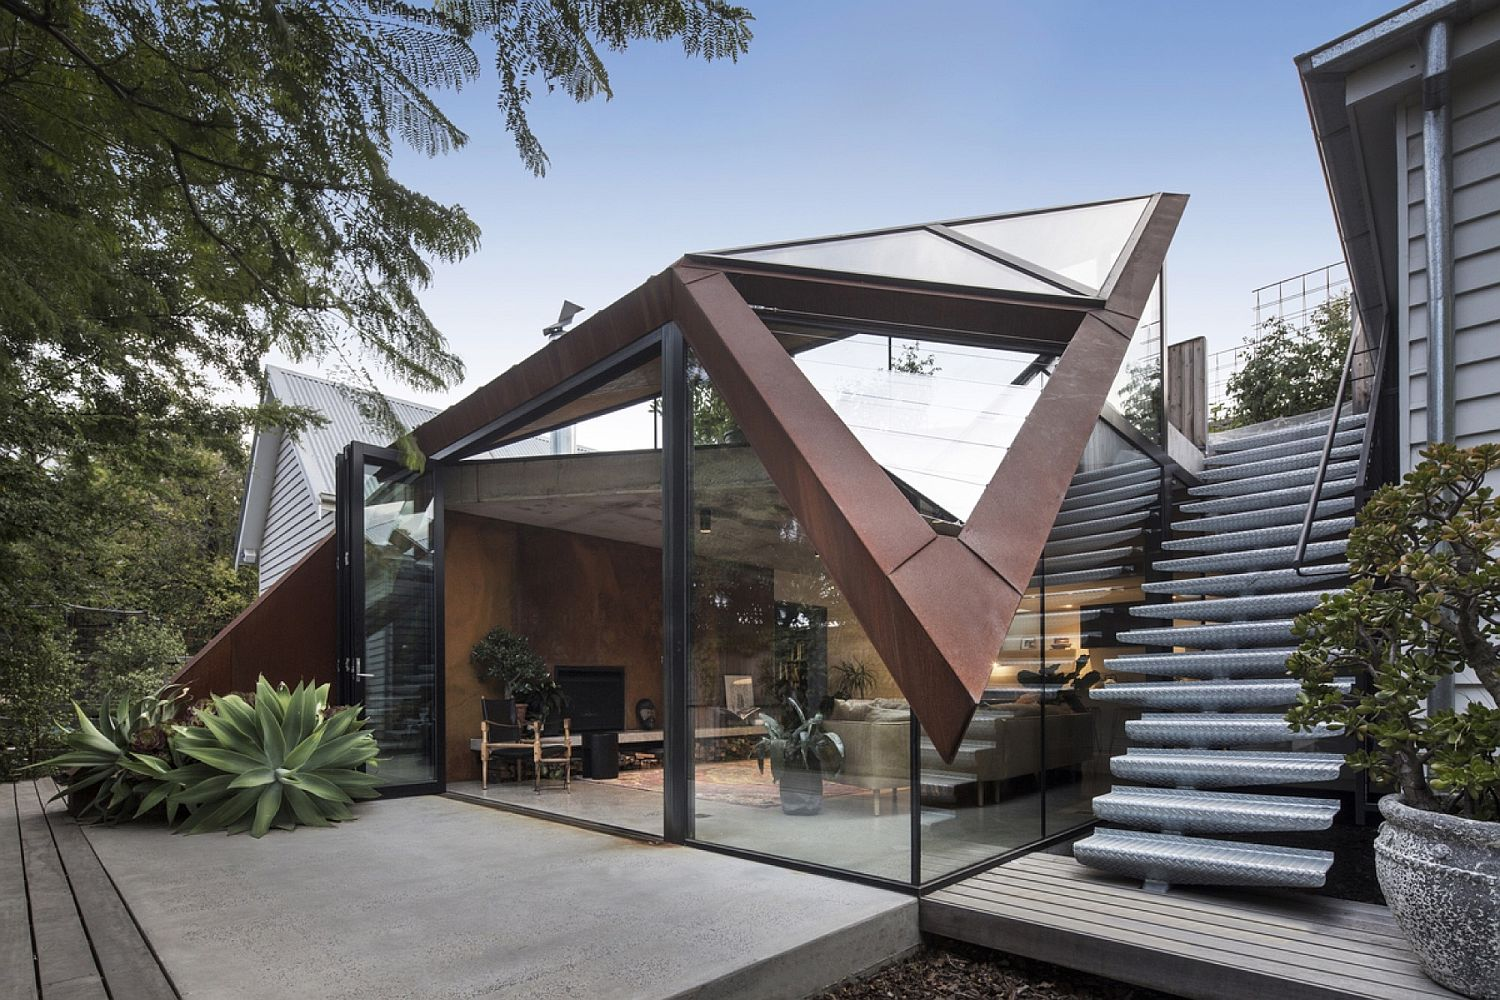 Abstract glass and metal structure connects two existing buildings